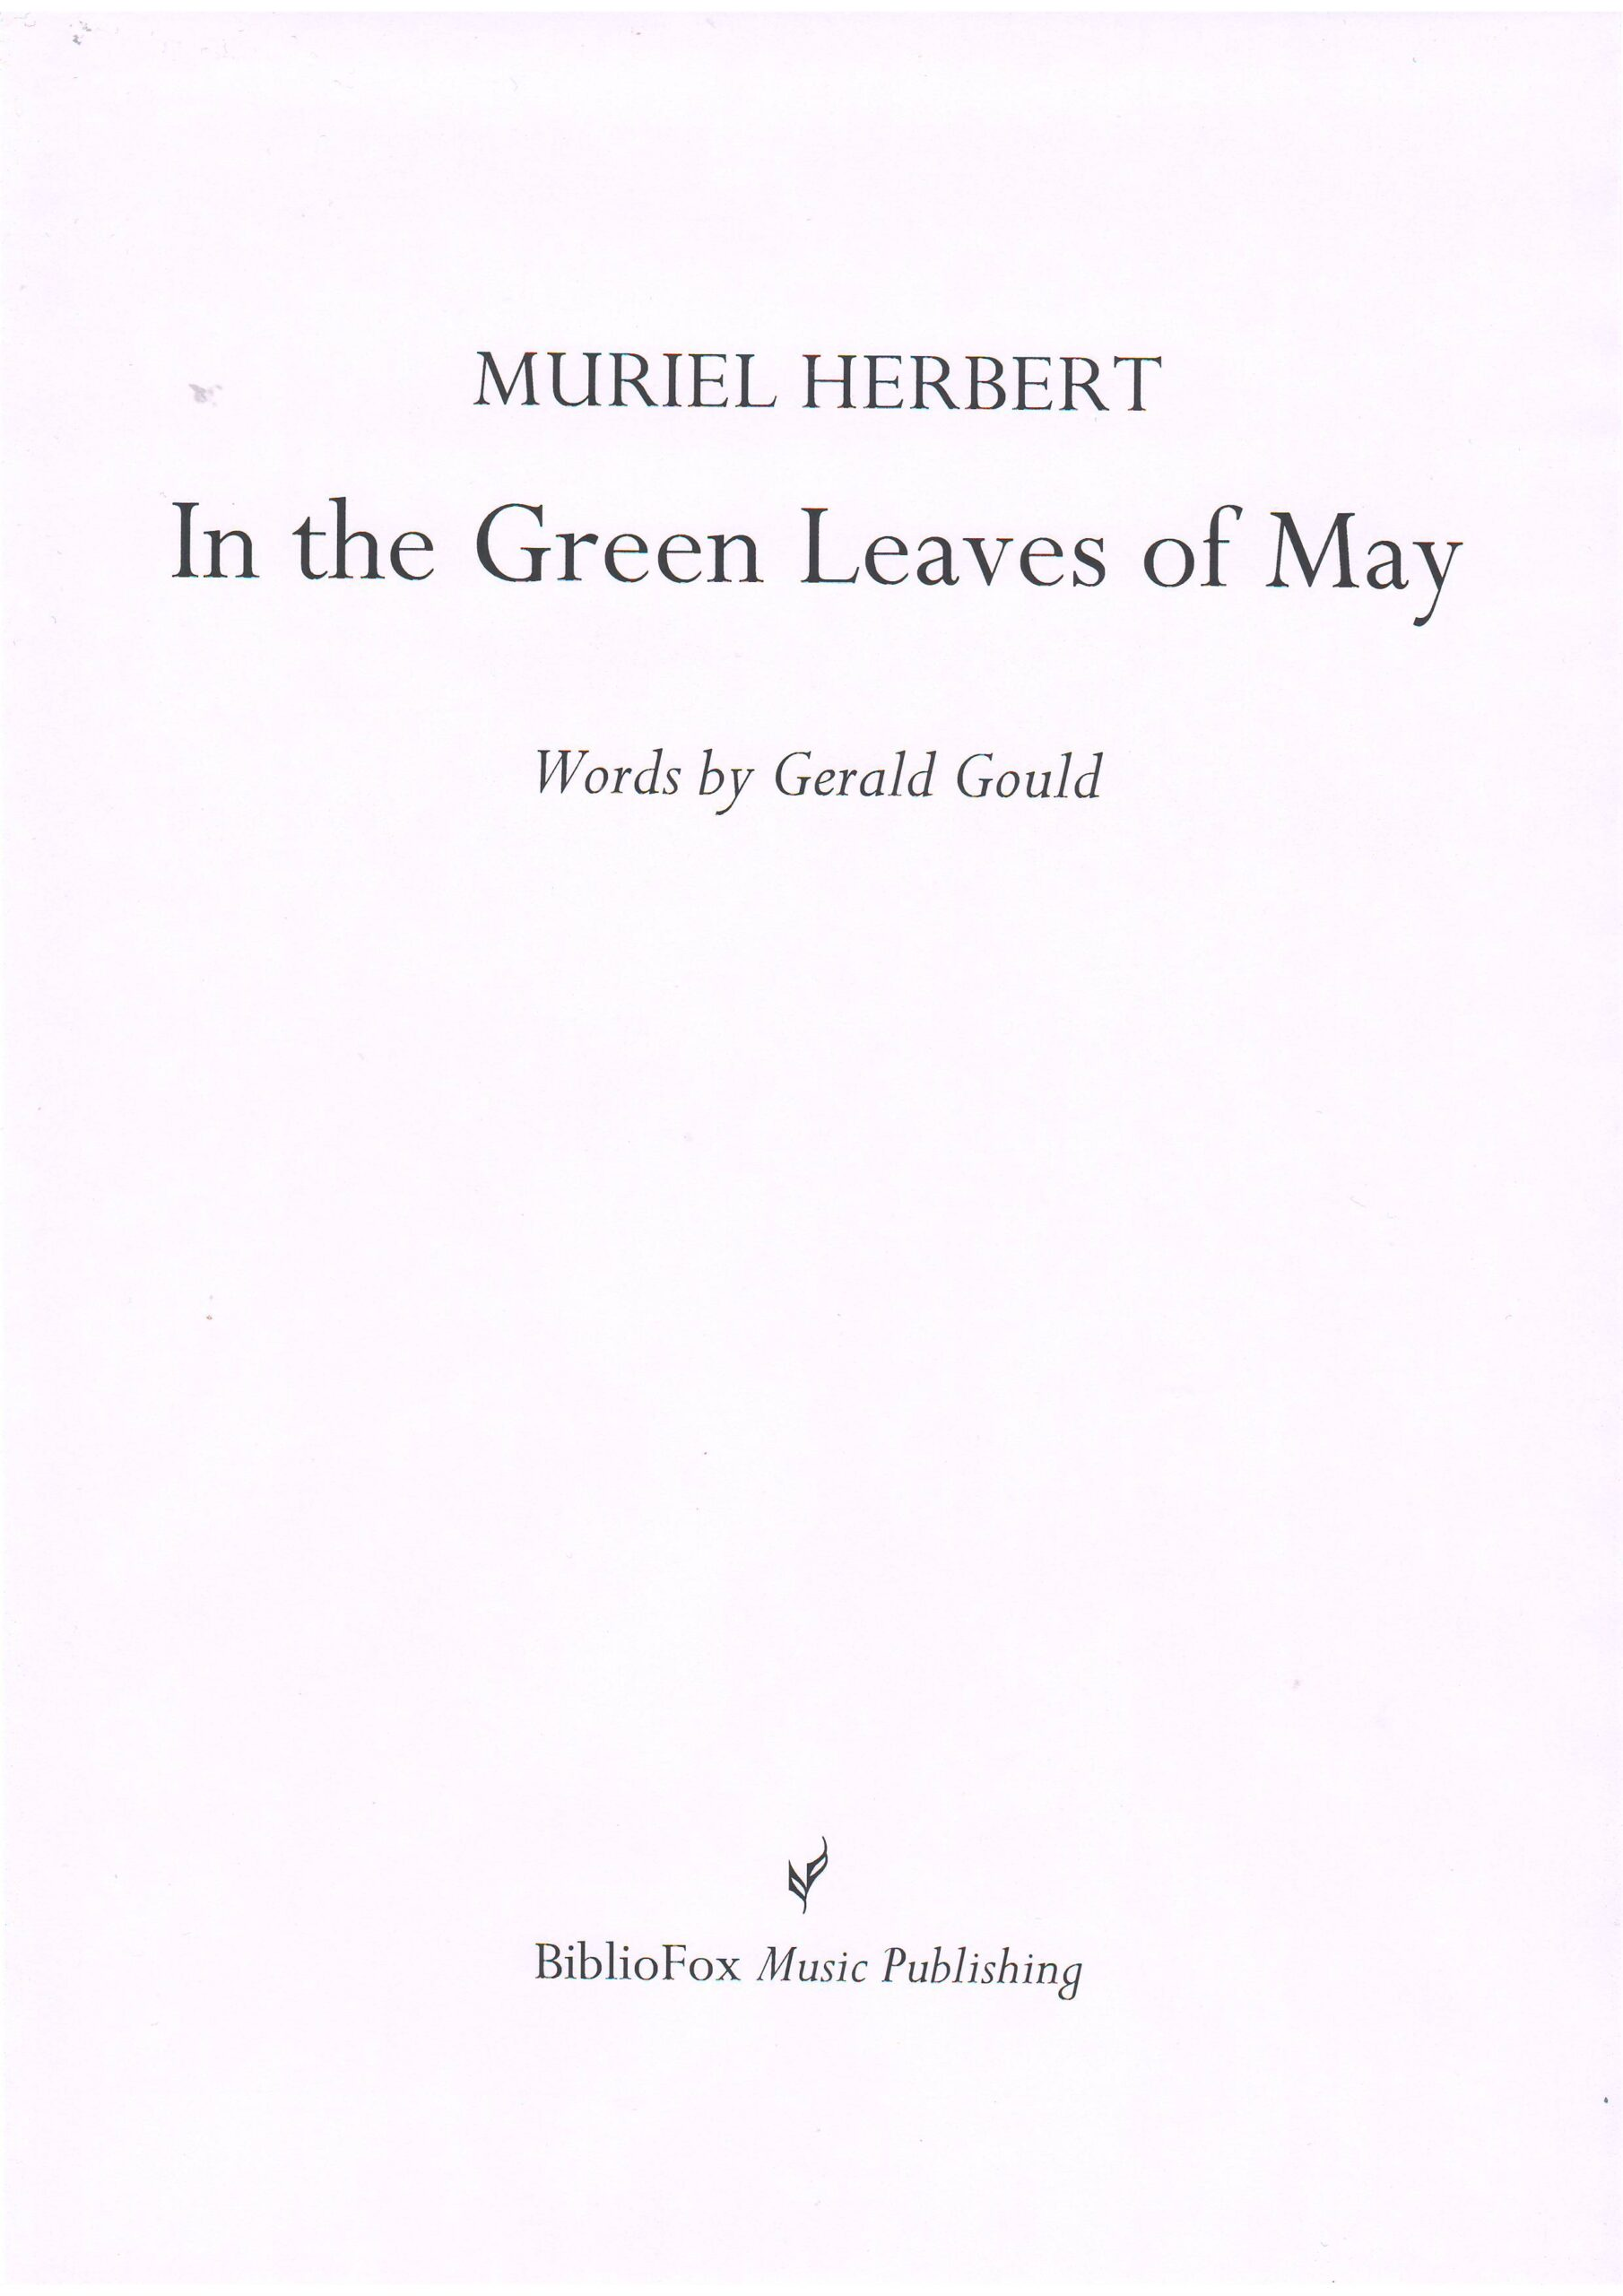 Cover page of Herbert In the Green Leaves of May